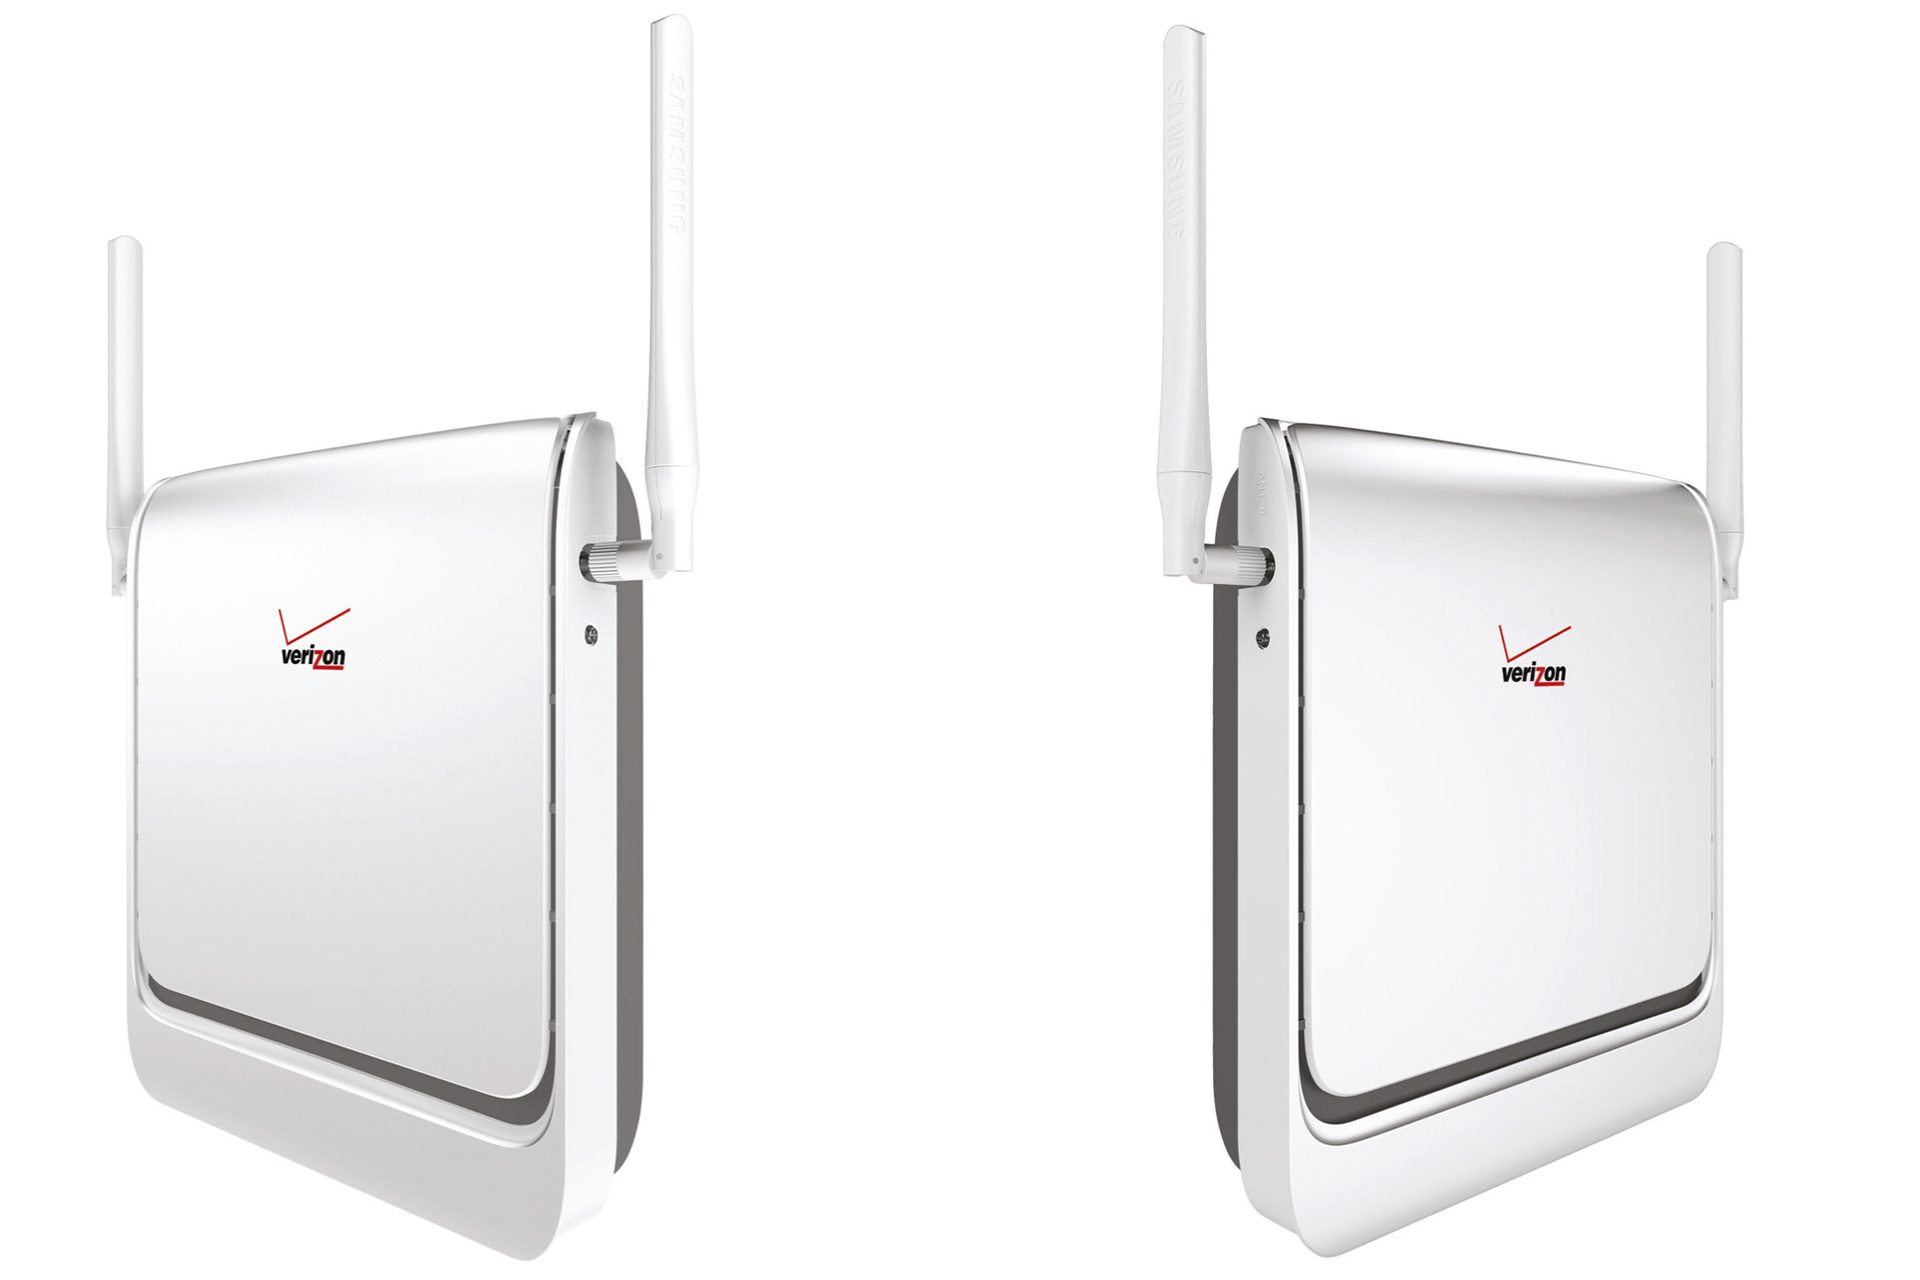 An AT&T Small Cell station connected to your router and placed strategically in the residence will behave much like an Internet Access Point and provide coverage throughout the residence.